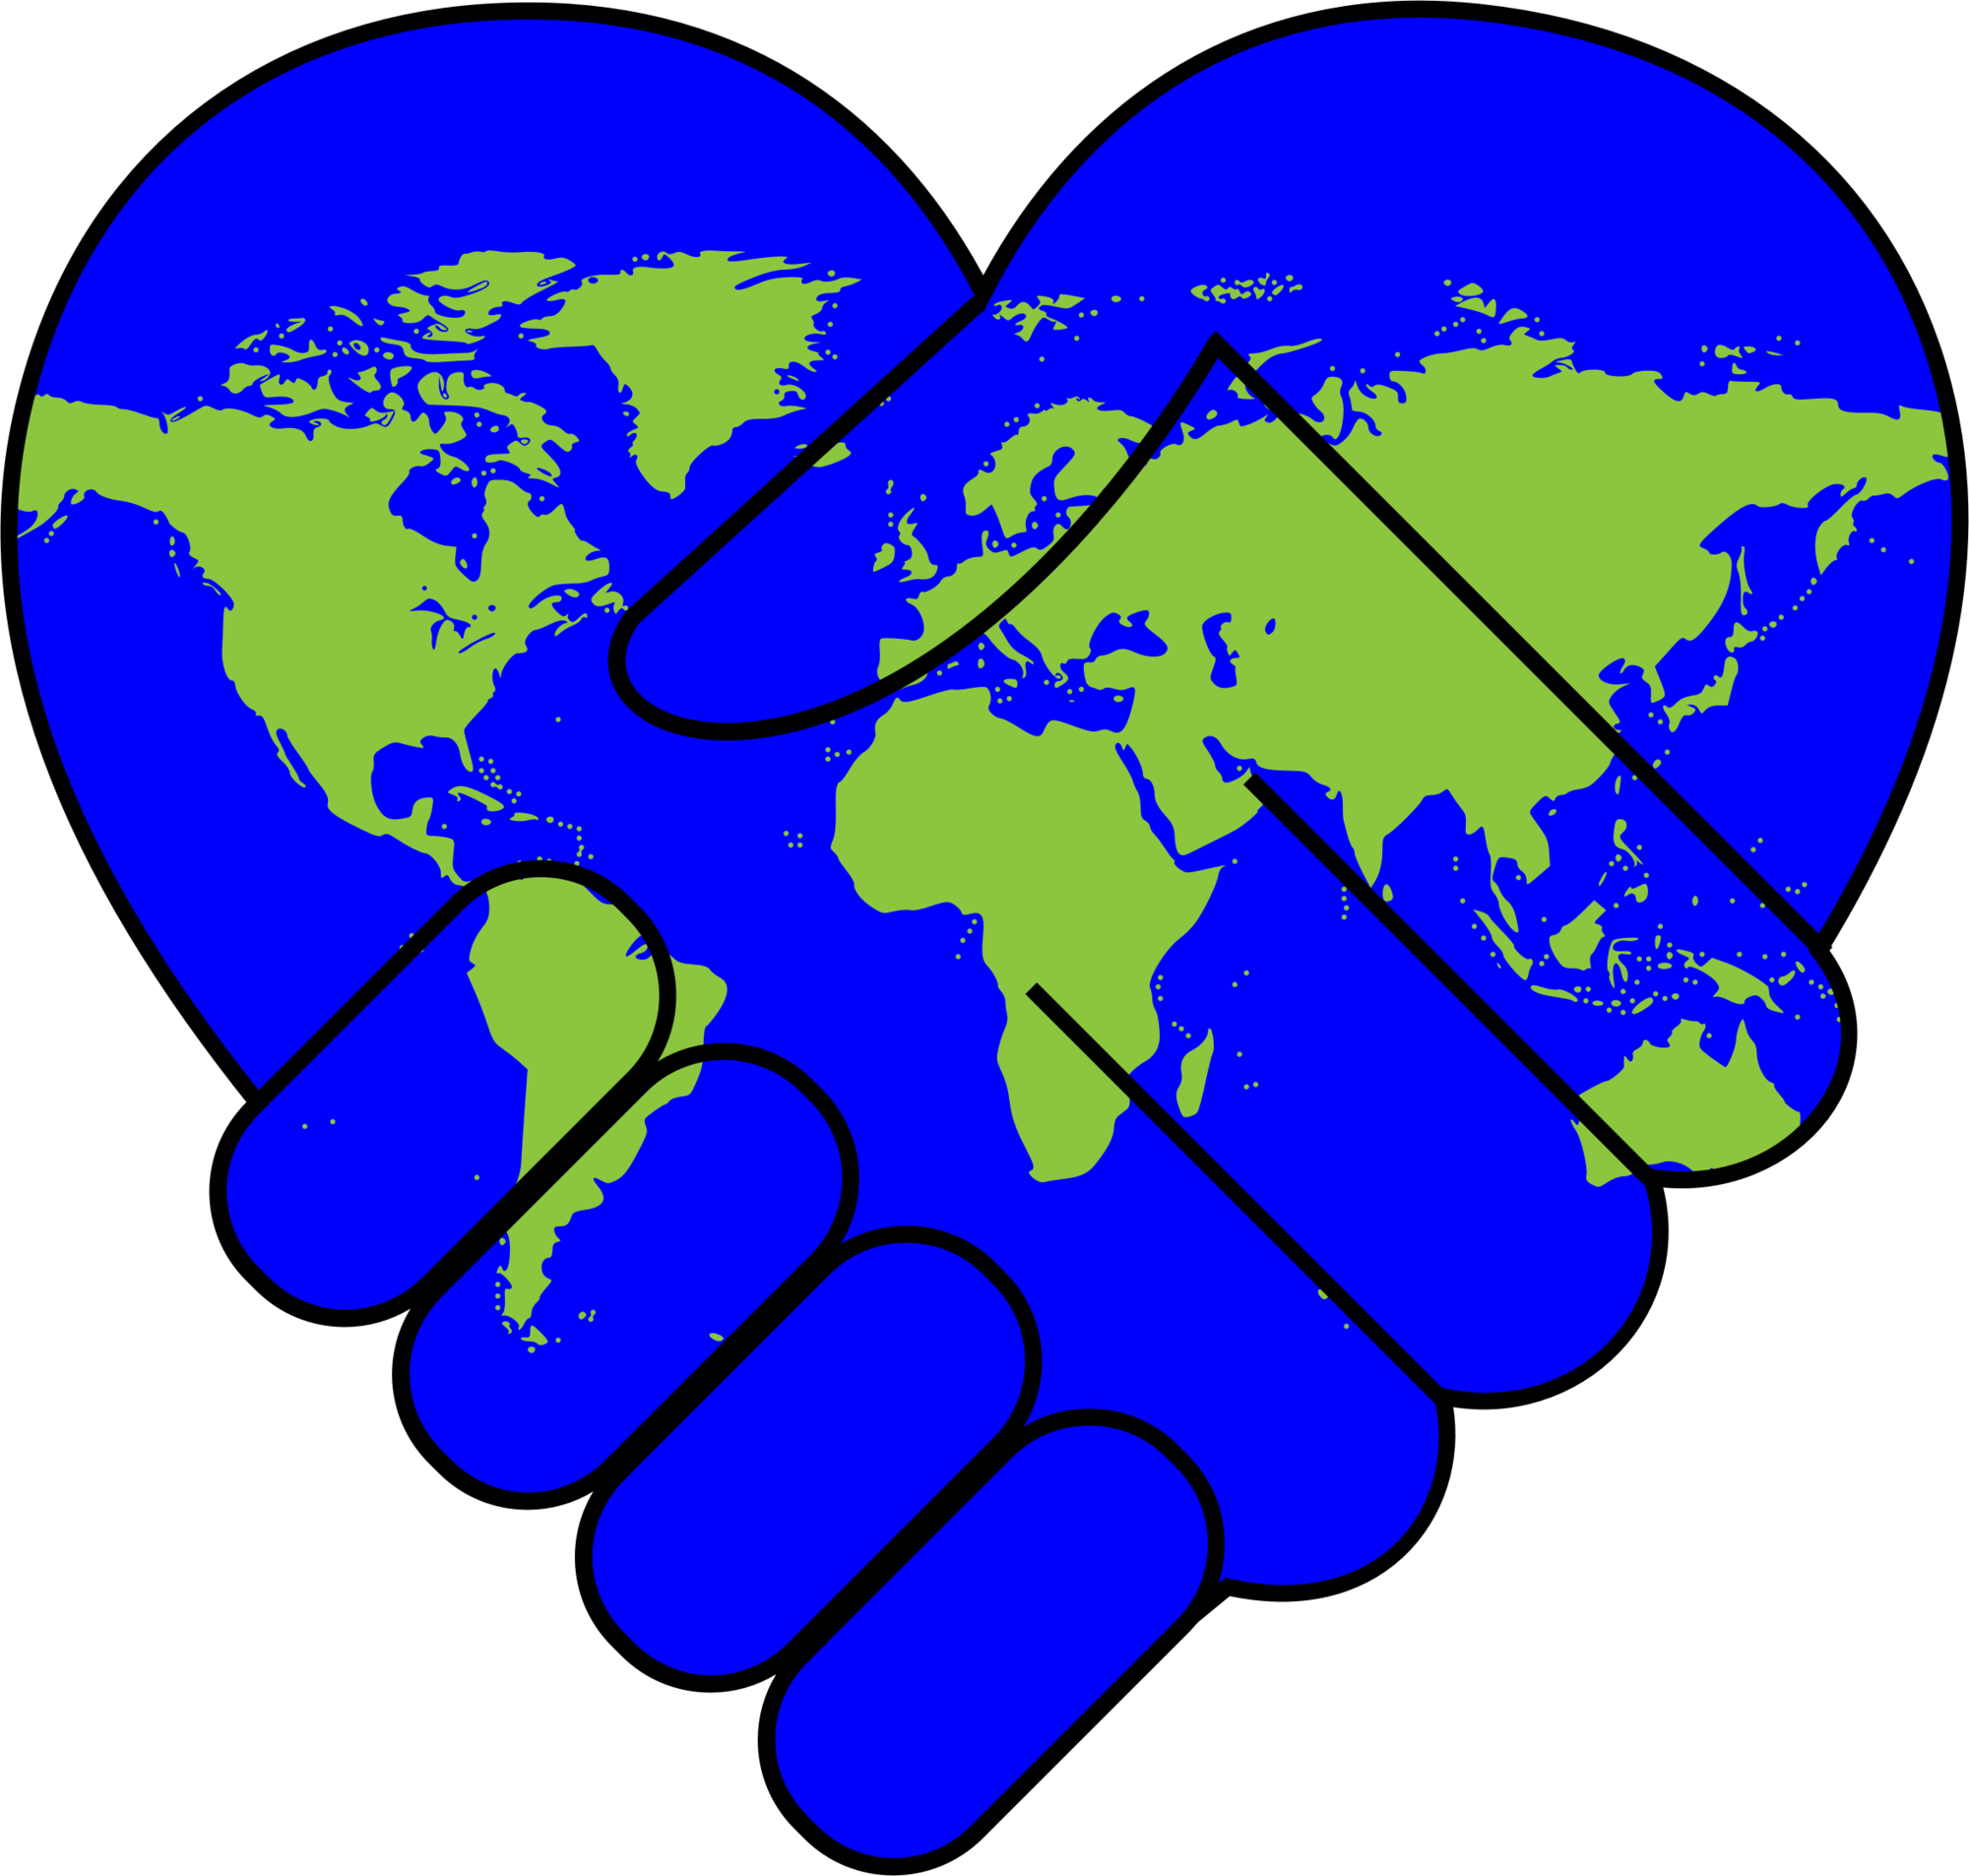 Peace clipart non violence. A call for